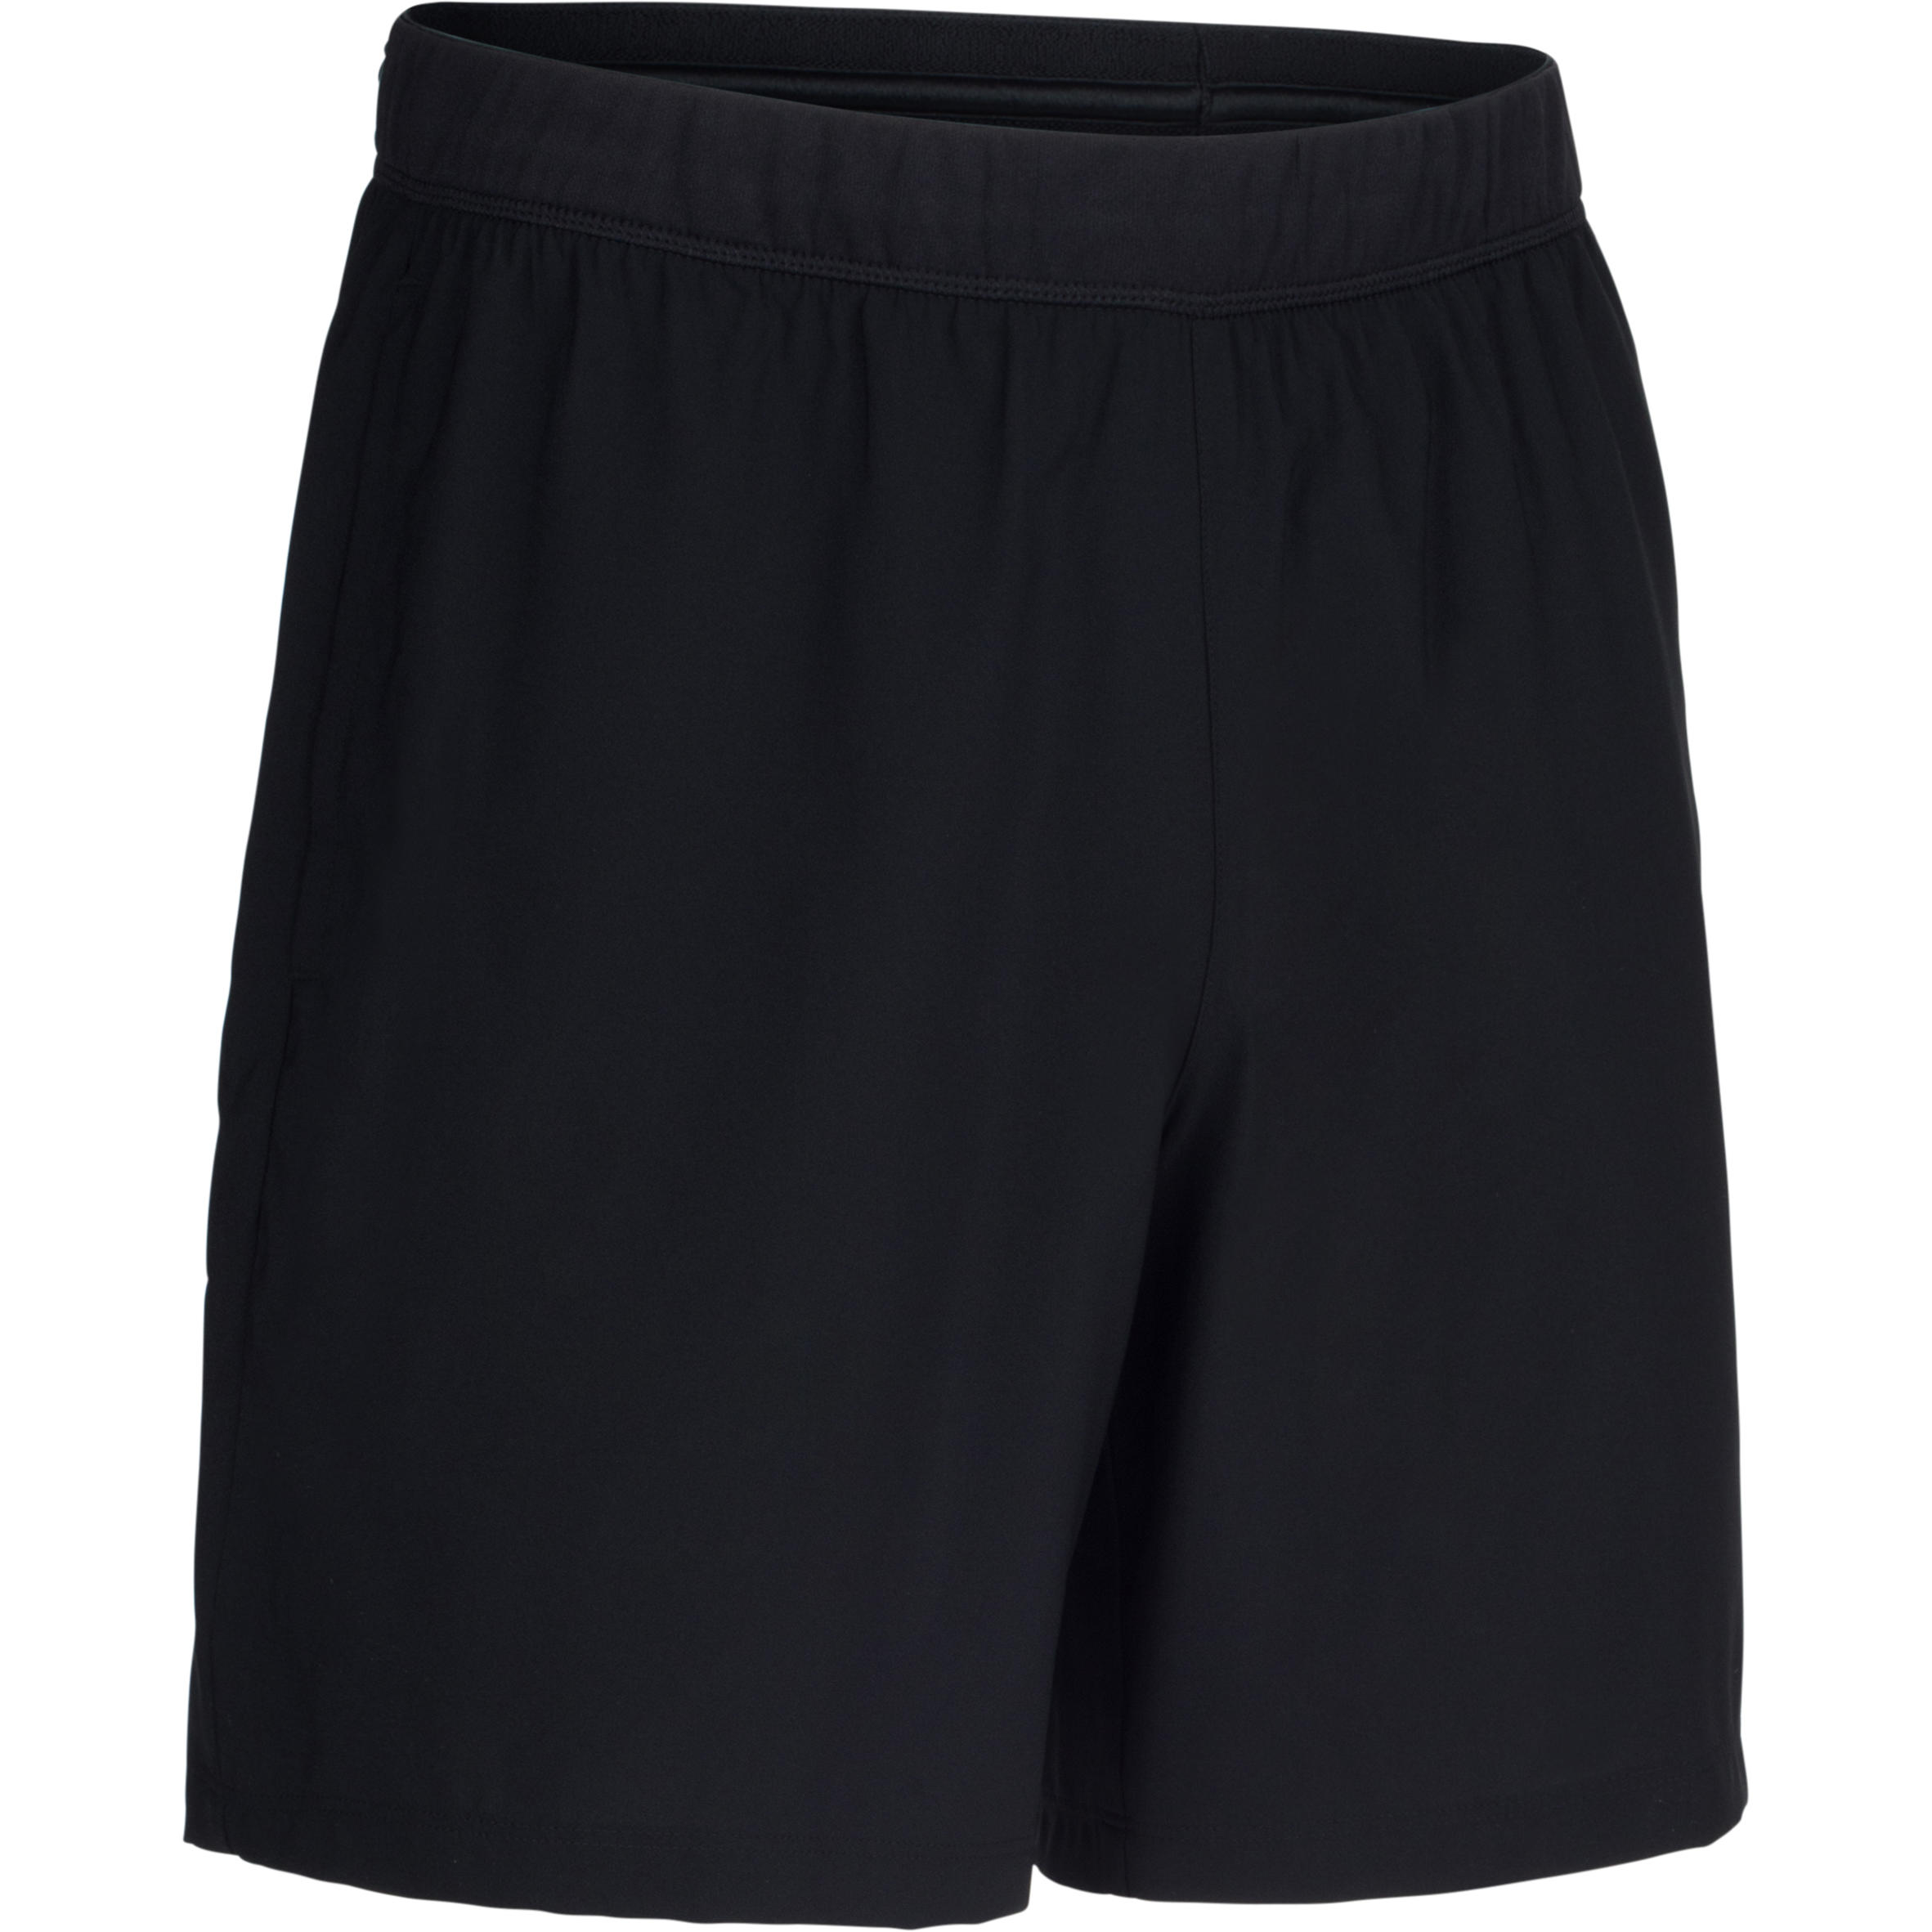 - Adidas Fitness short voor heren